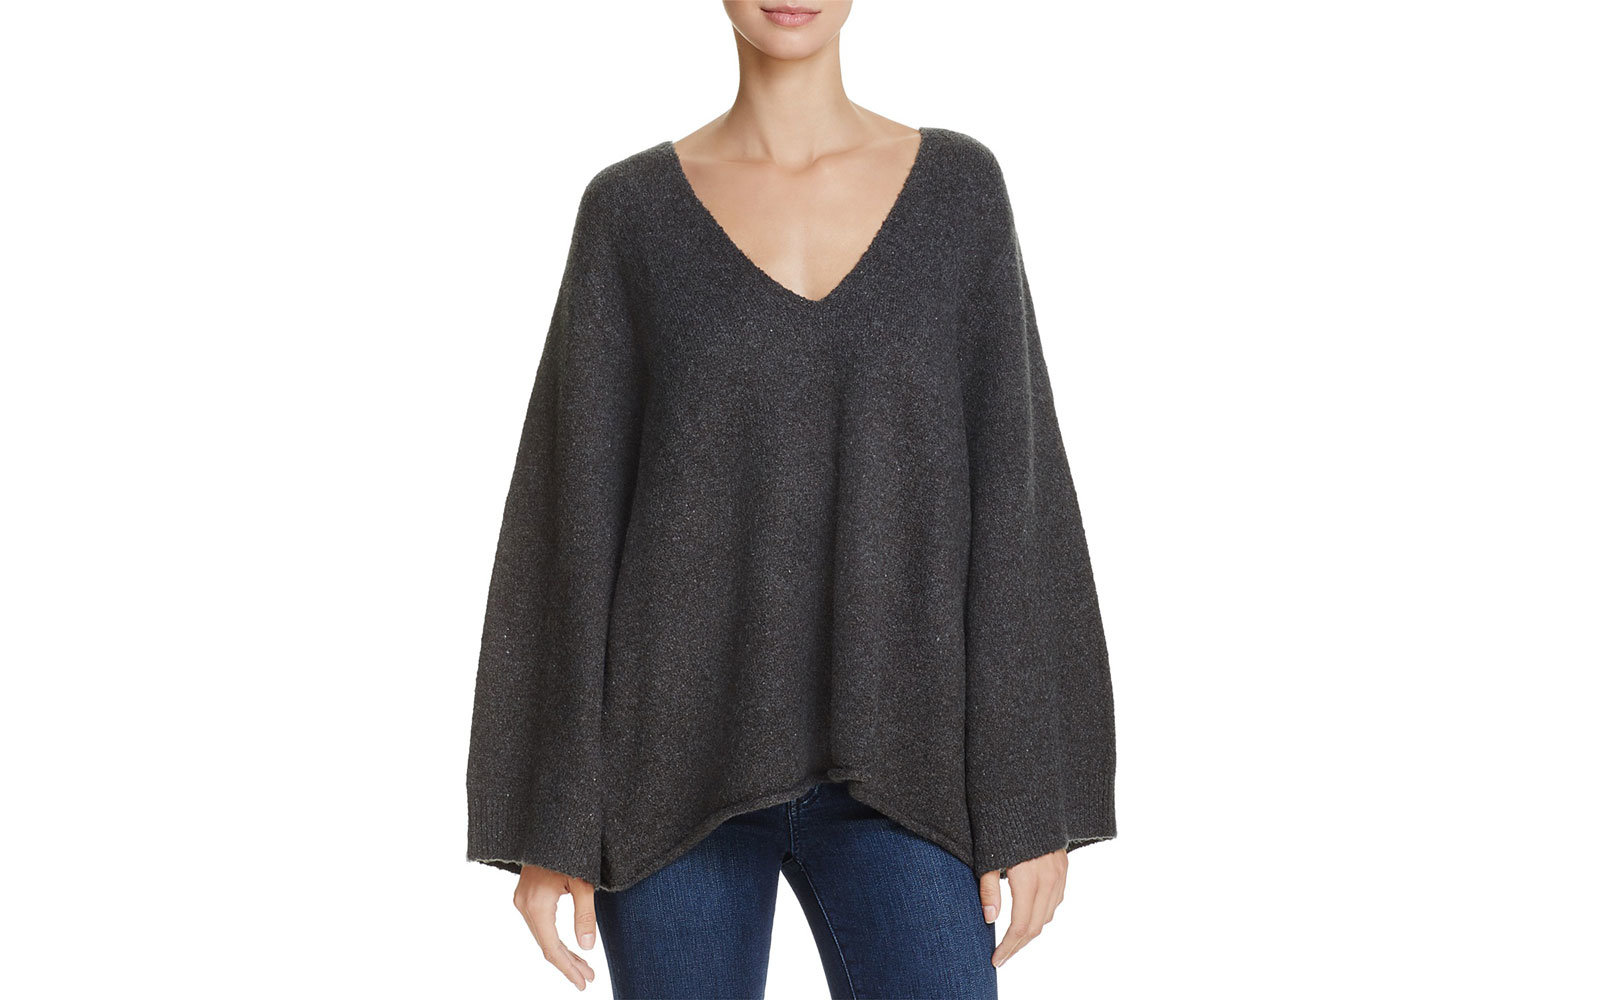 French Connection's Urban Flossy Slouchy Flared-Sleeve Sweater